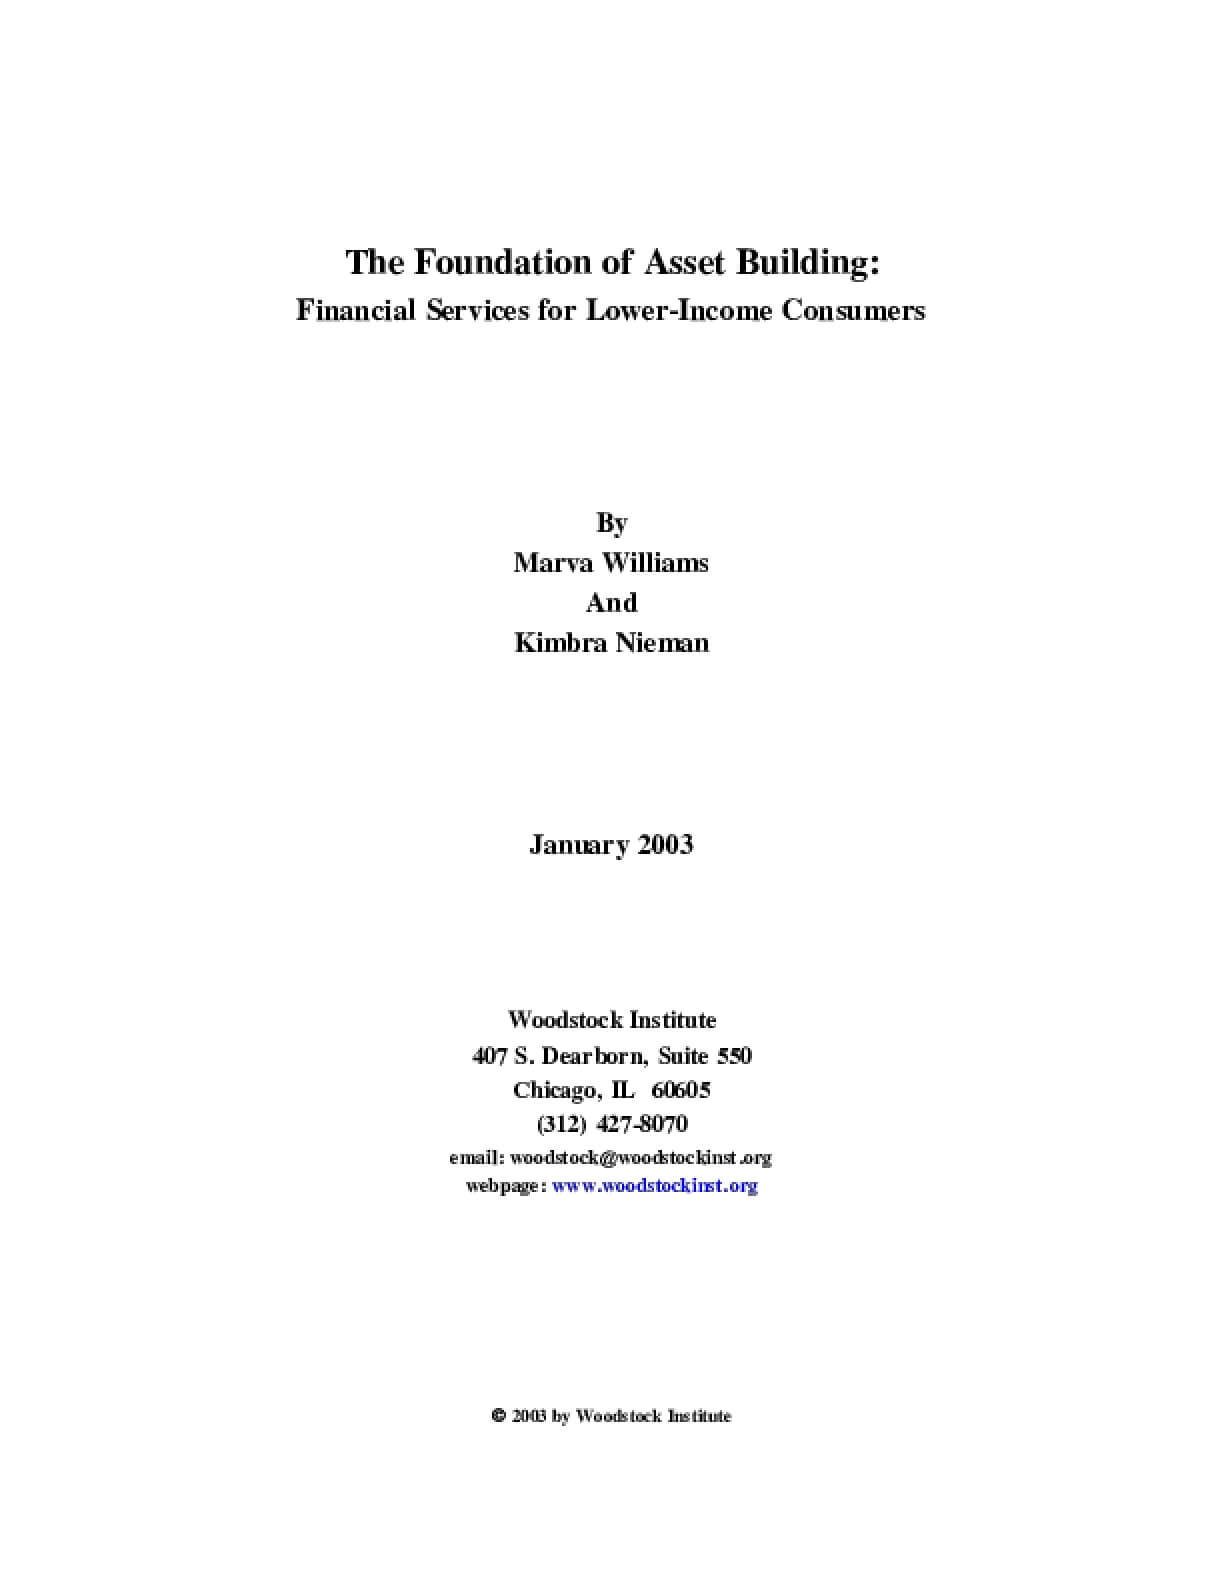 The Foundation of Asset Building: Financial Services for Lower-Income Consumers